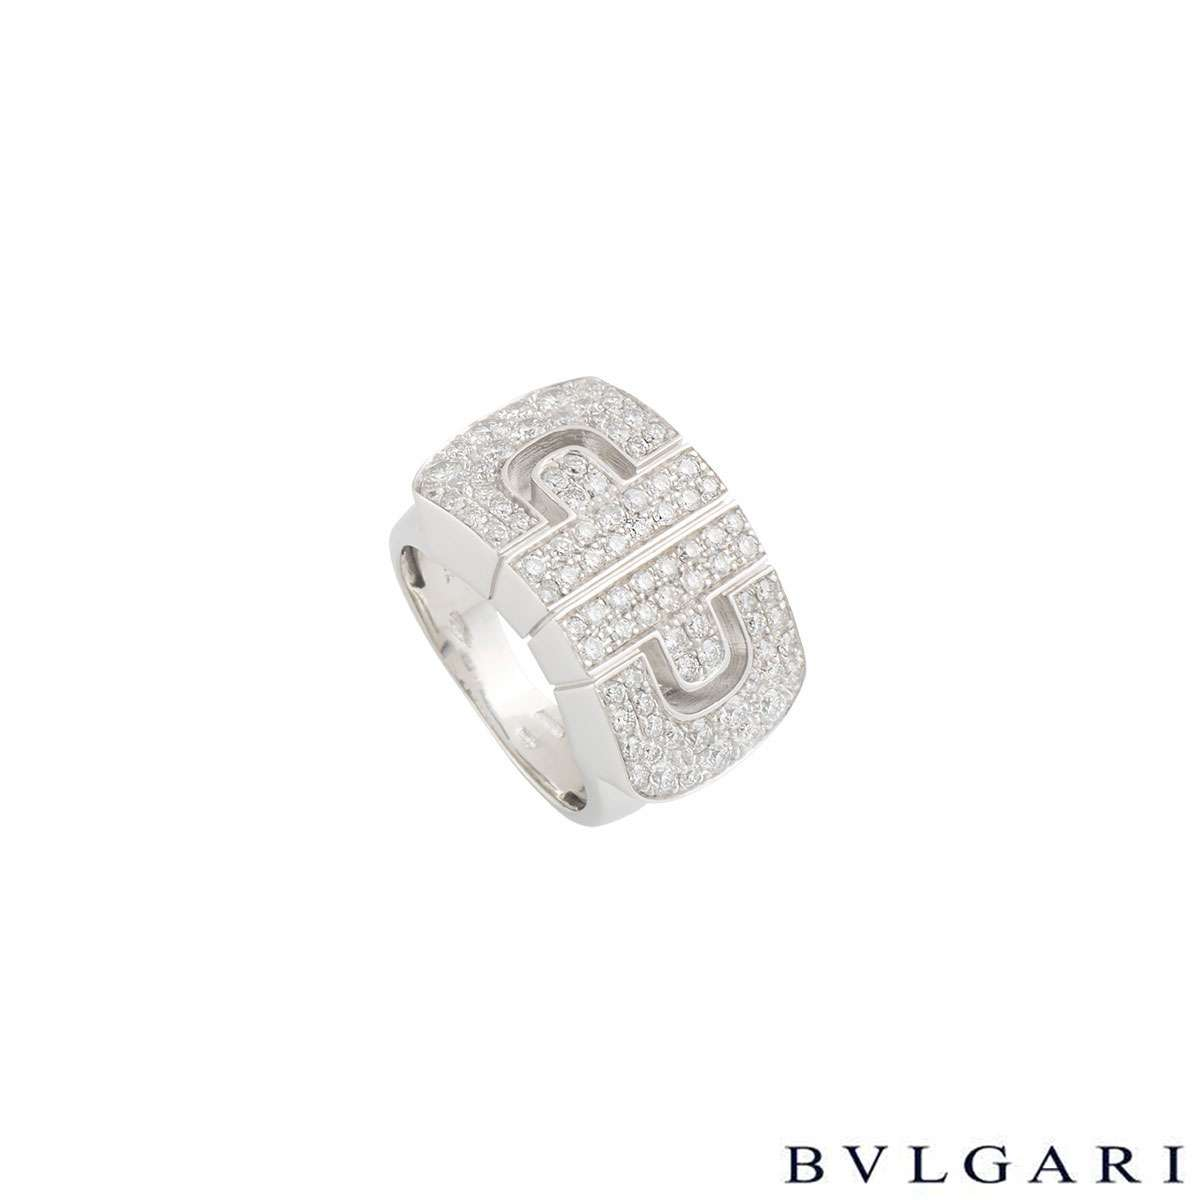 Bvlgari White Gold Diamond Parentesi Ring Size 47